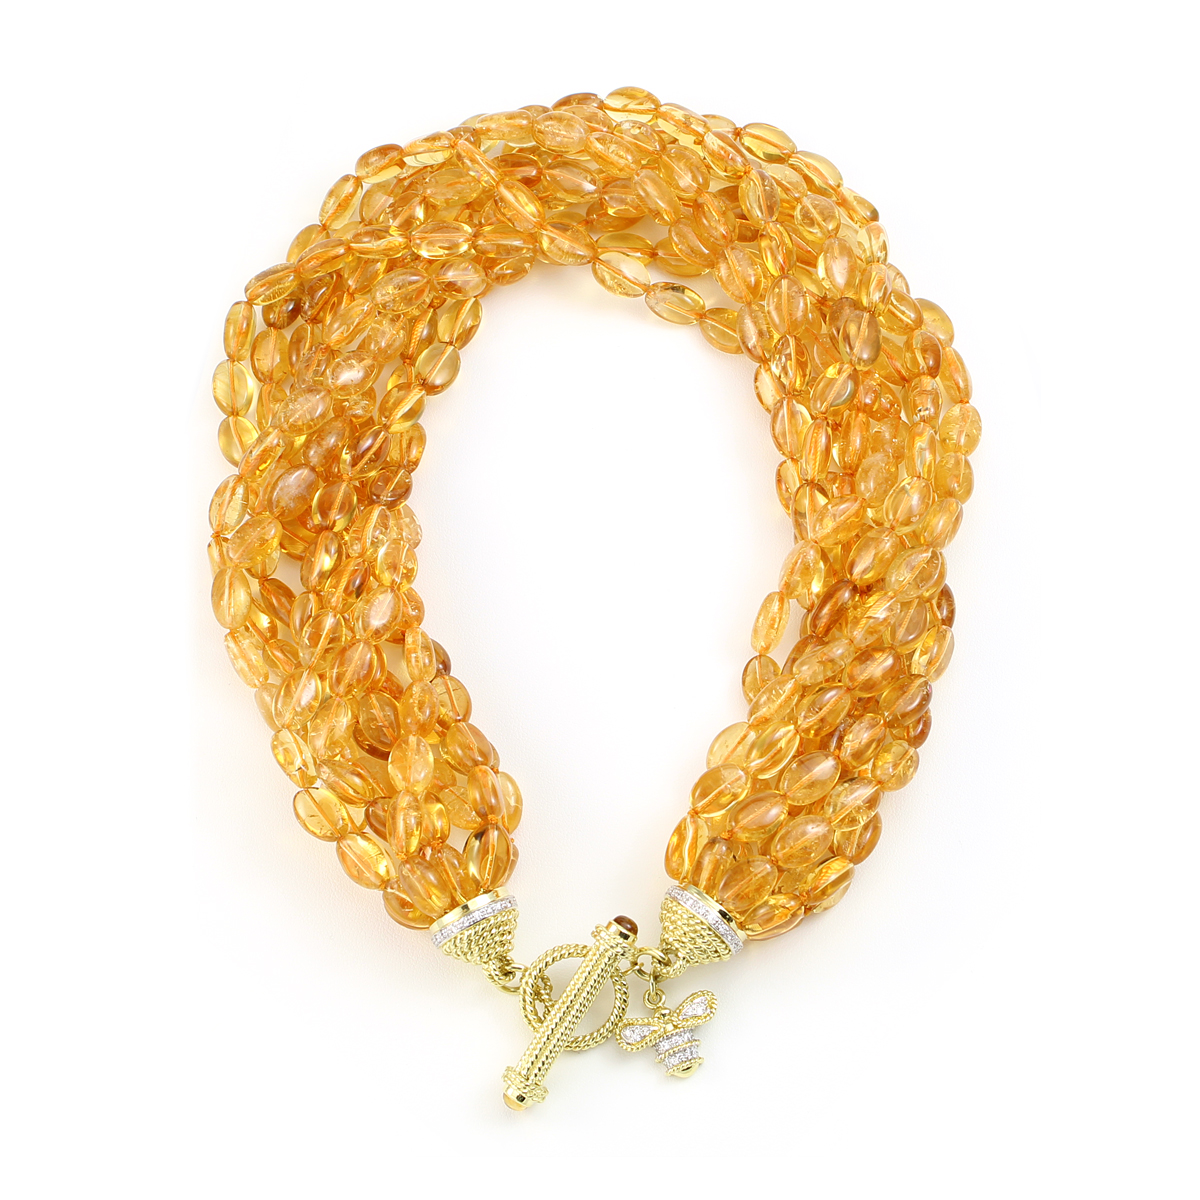 18 Karat Yellow Gold Citrine Nugget Necklace with Diamond Bee Clasp